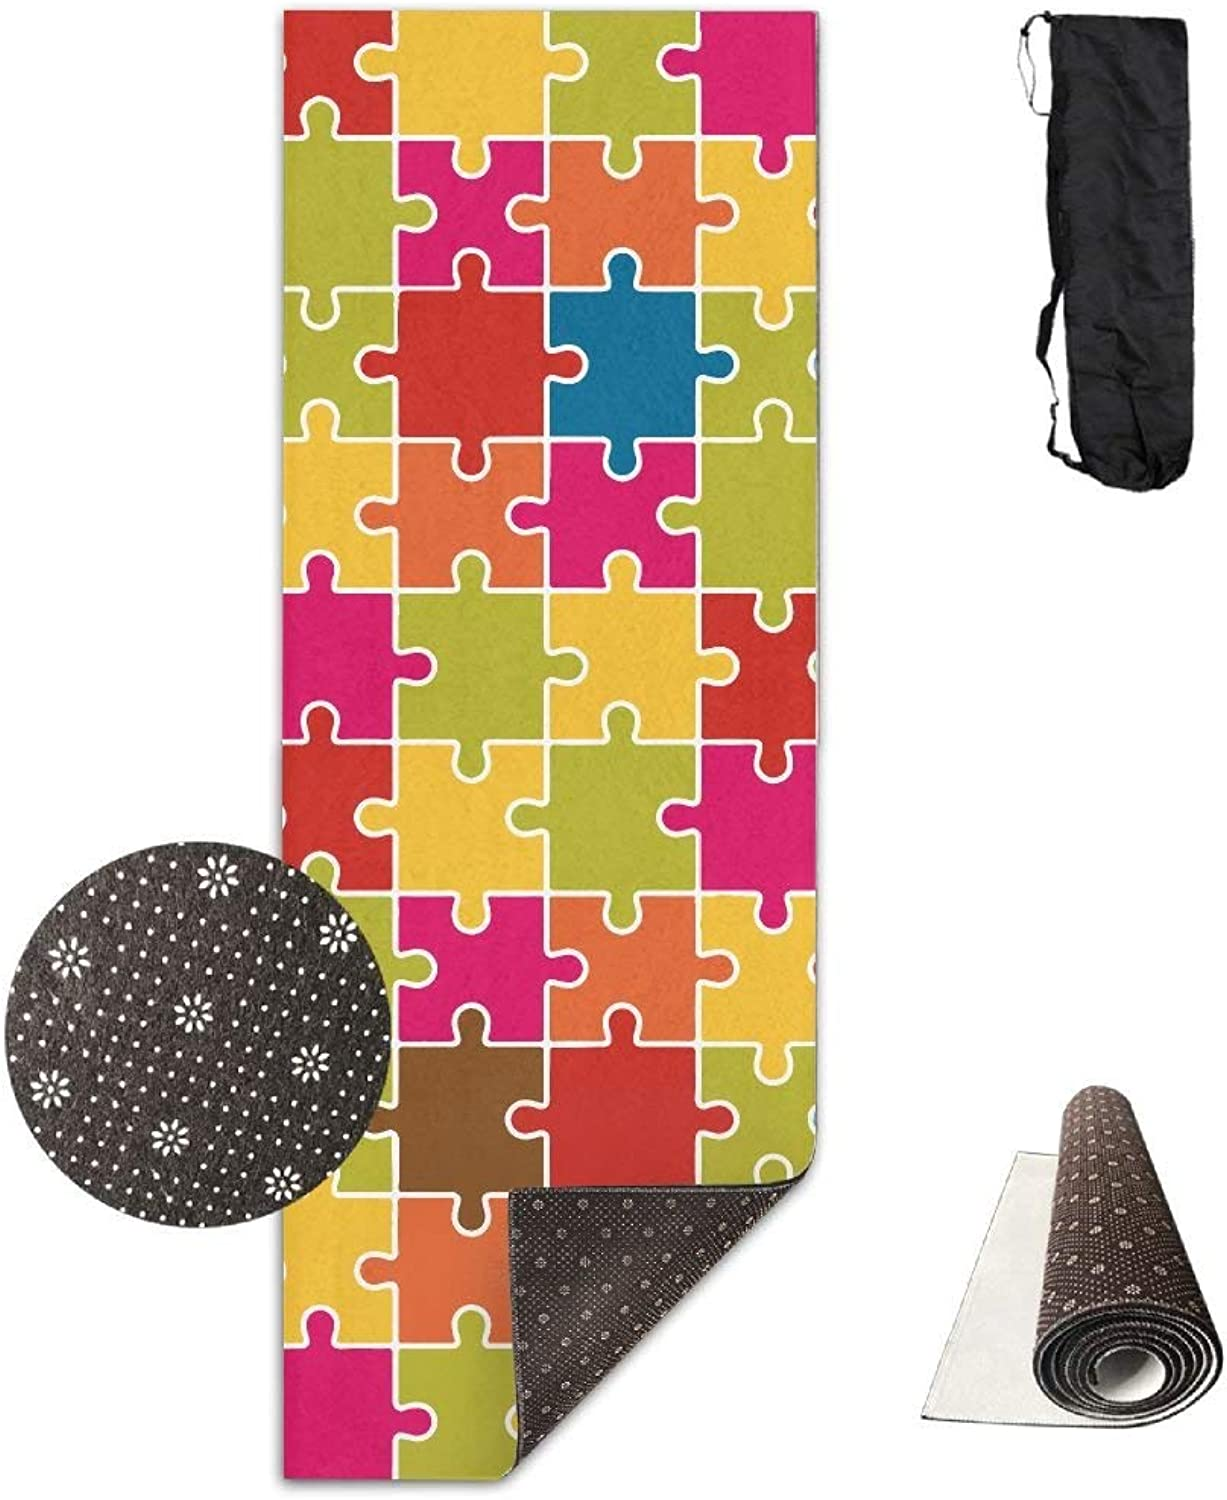 Jigsaw Puzzle Pieces Icon Pattern colorful Yoga Mat  Advanced Yoga Mat  NonSlip Lining  Easy to Clean  LatexFree  Lightweight and Durable  Long 180 Width 61cm